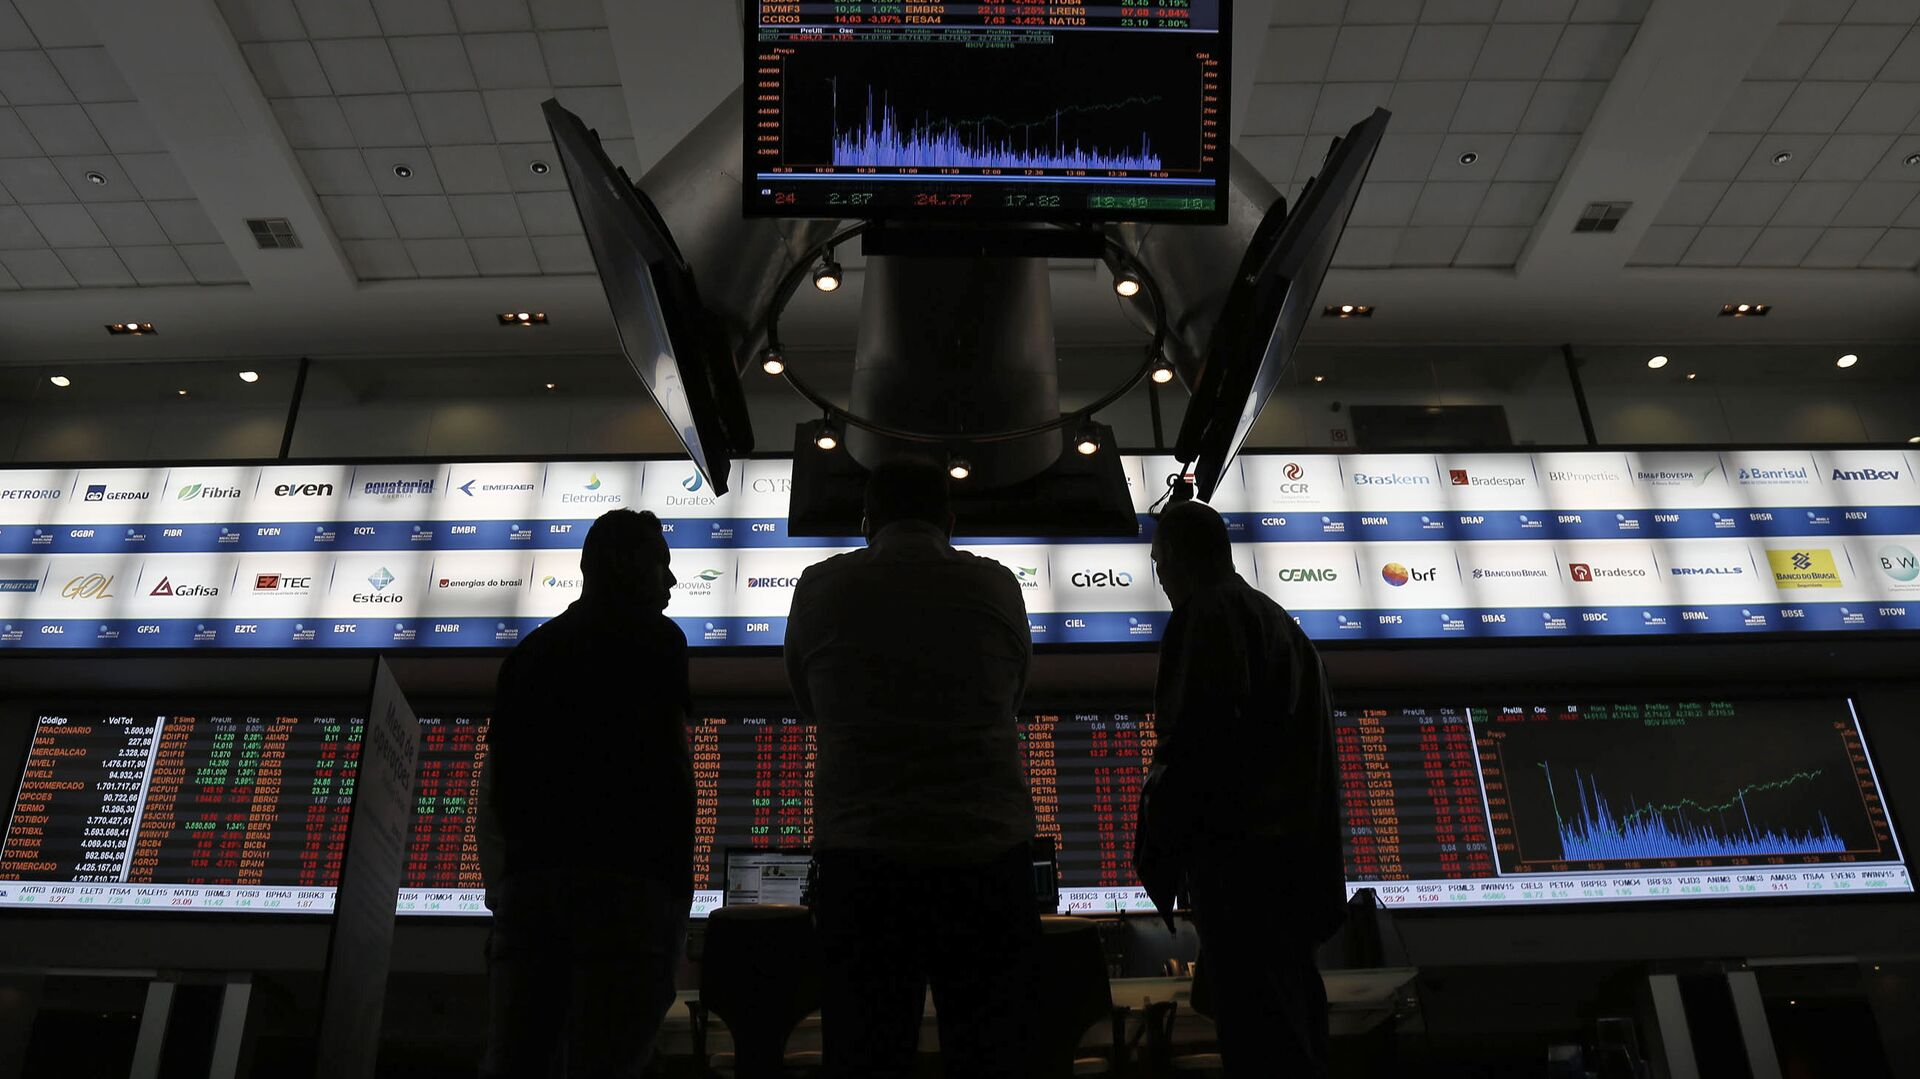 Picture taken at Sao Paulo's Stocks Exchange (Bovespa) headquarters in downtown Sao Paulo, Brazil, on August 24, 2015 - Sputnik Mundo, 1920, 08.03.2021